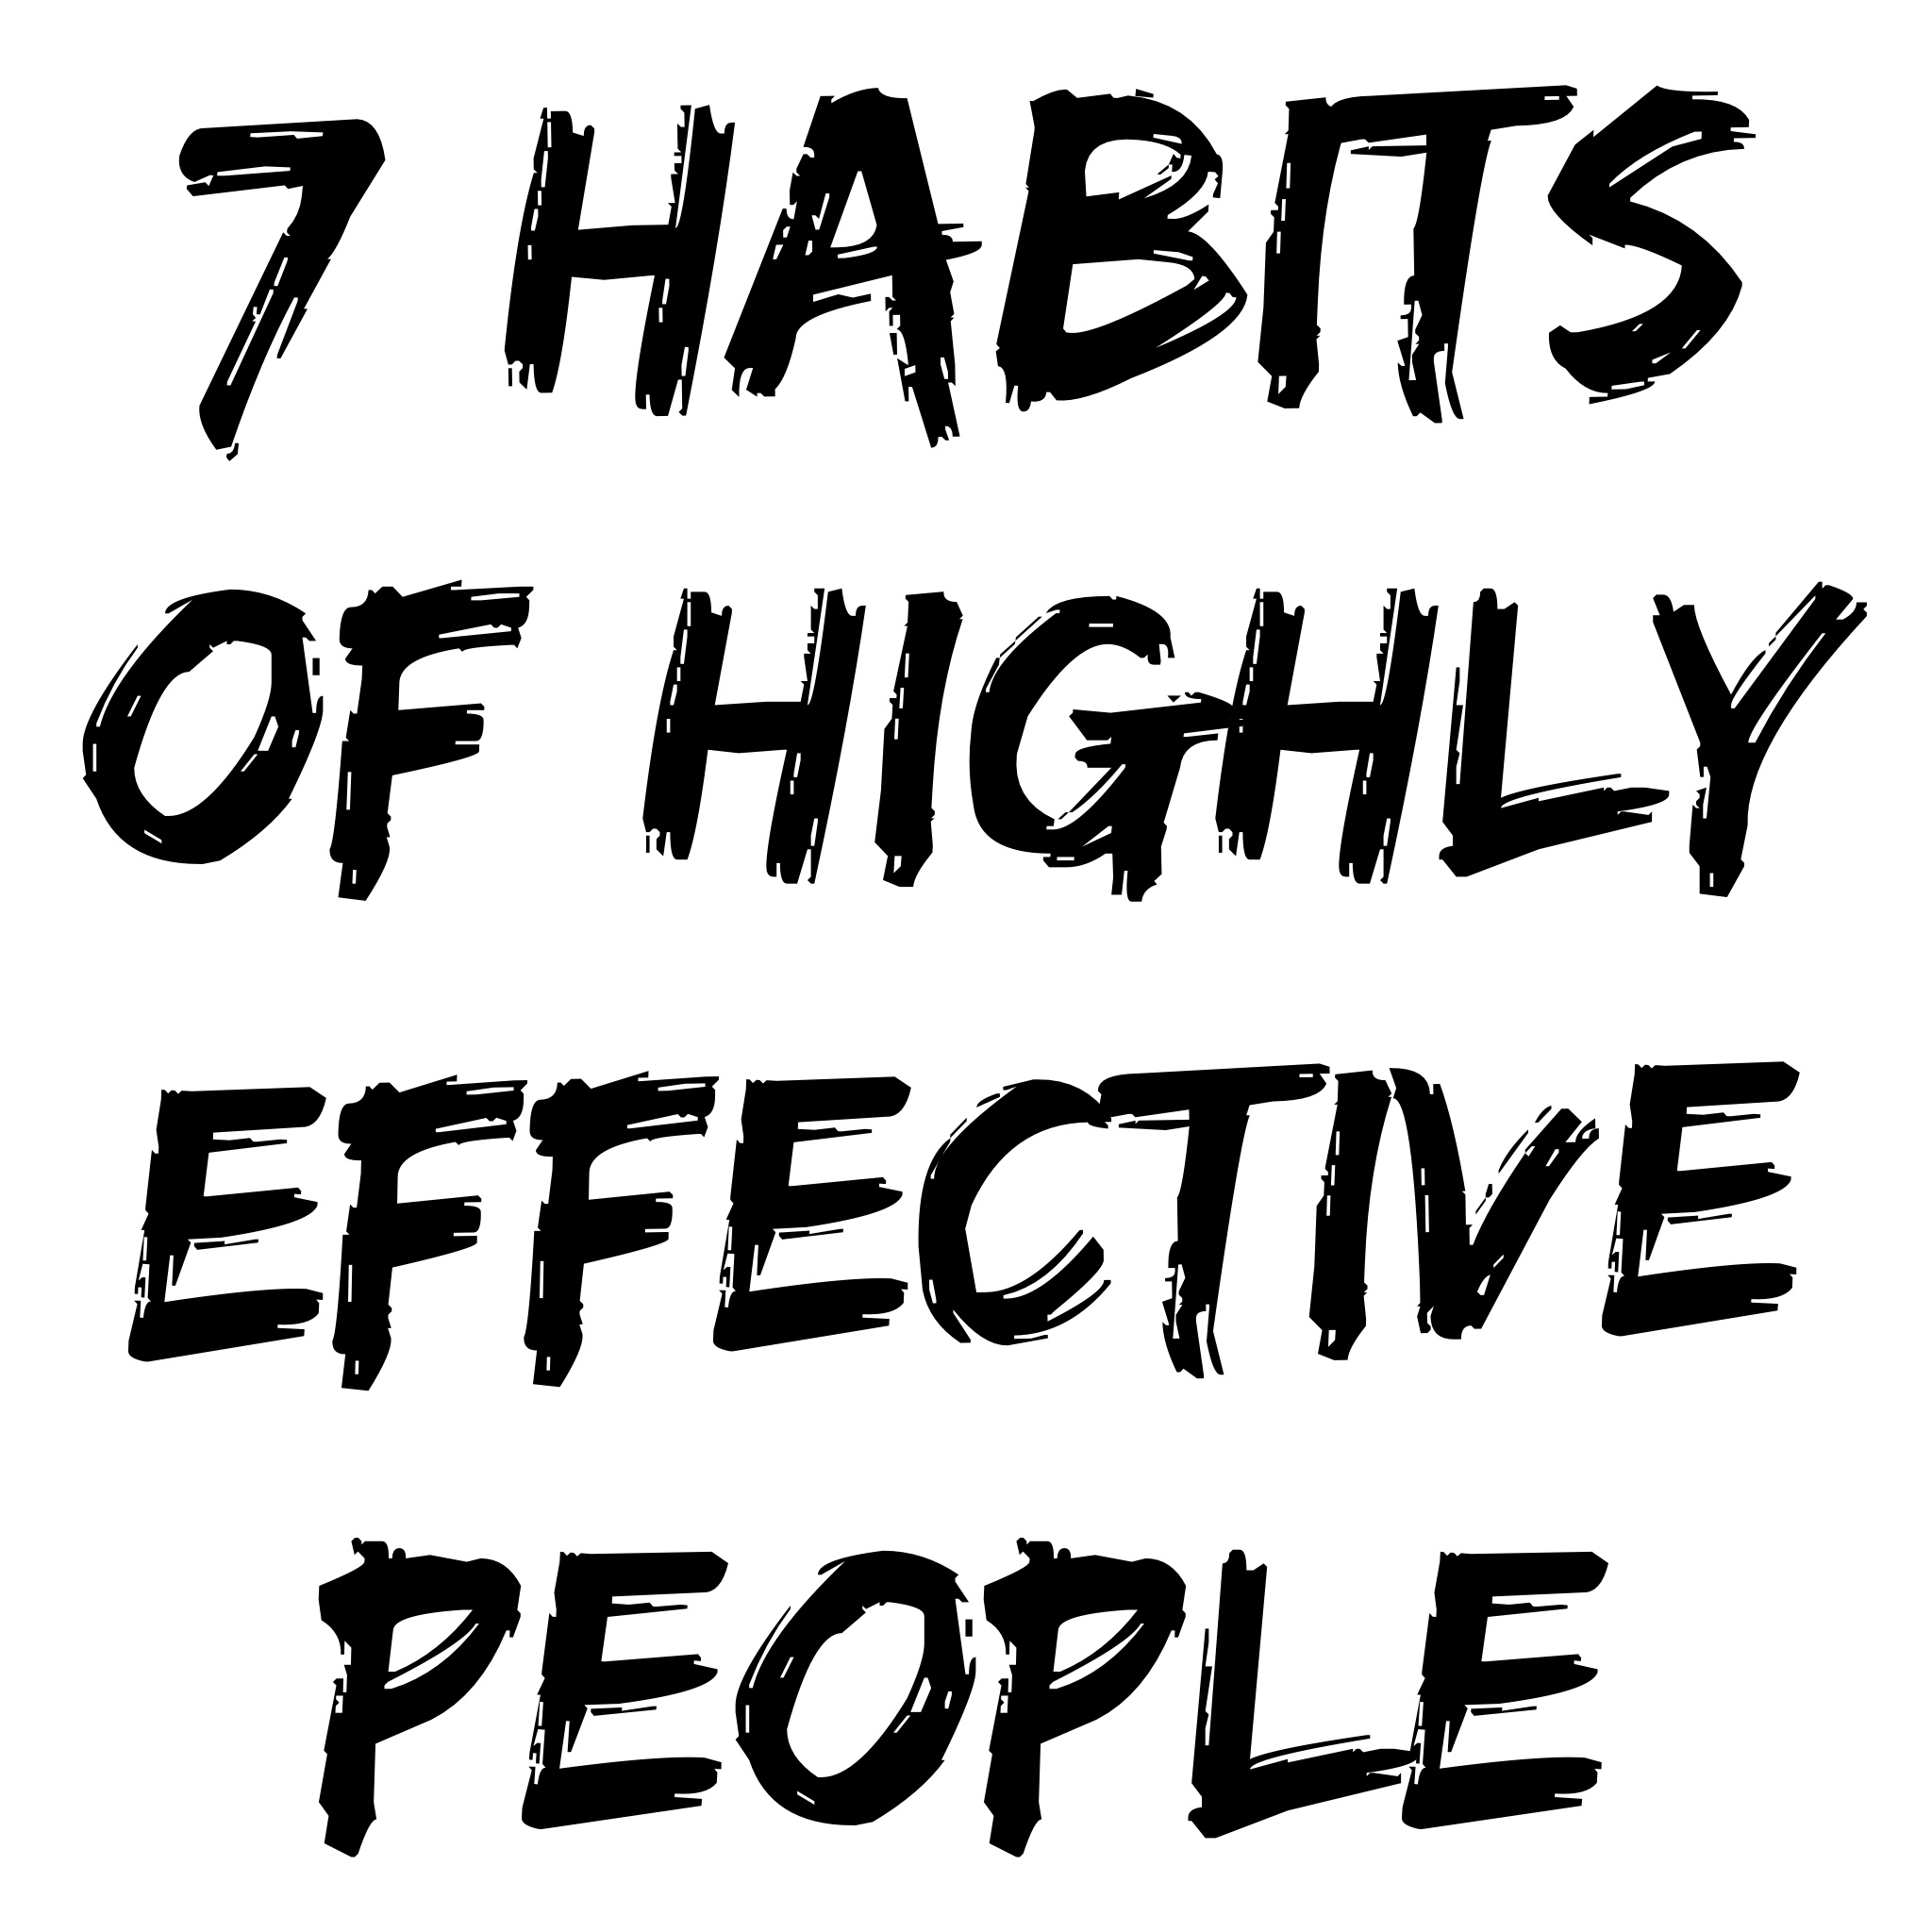 essay on the seven habits of highly effective people The 7 habits of highly effective people,  on this premise, it introduces the seven habits in a proper order each chapter is dedicated to one of the habits,.